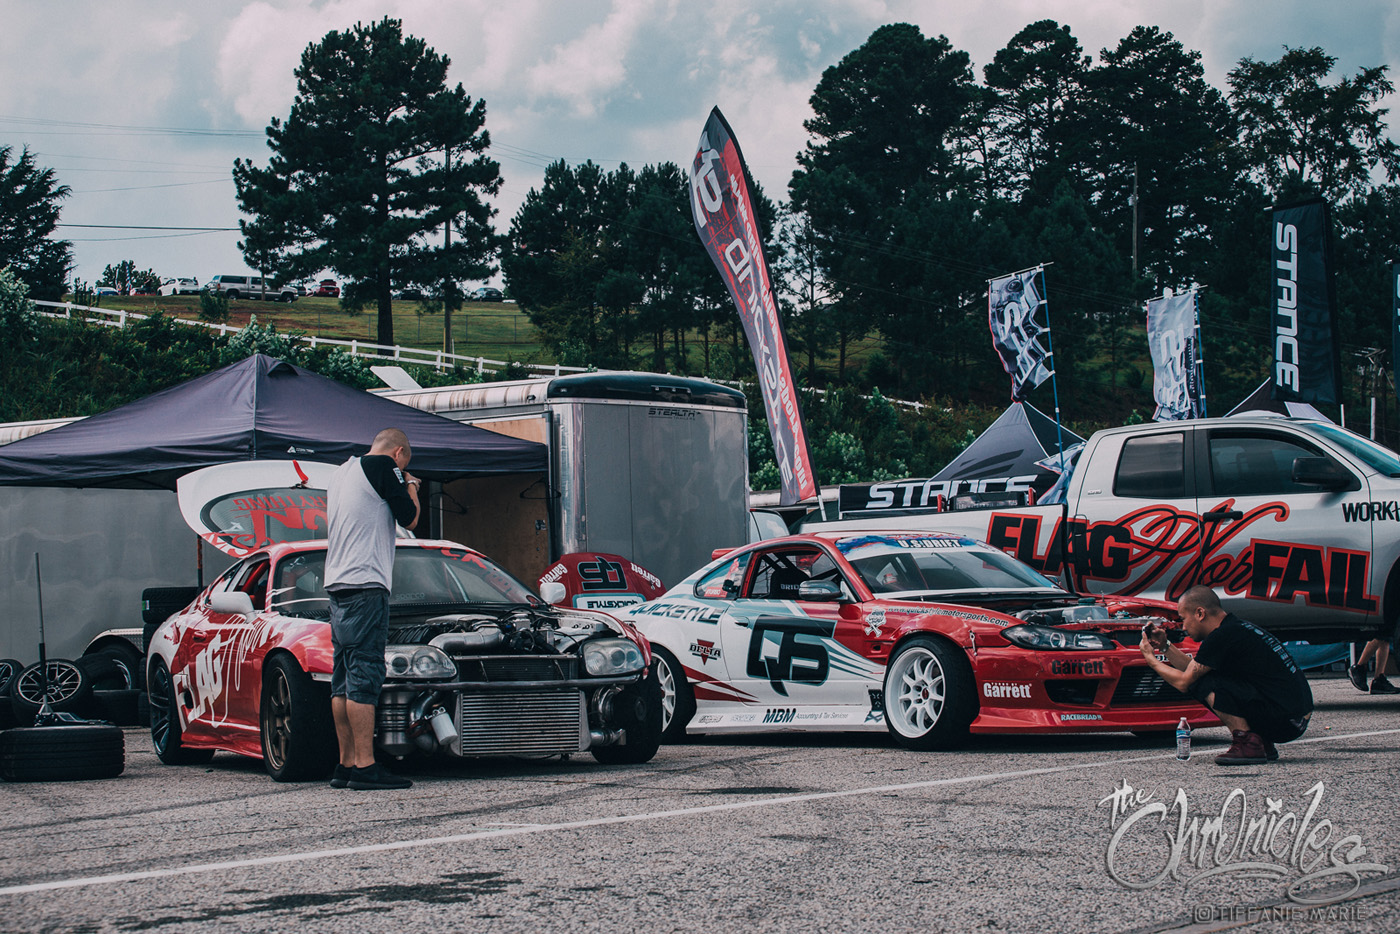 Gridlife South 2016 Coverage…Part 3 of 3…